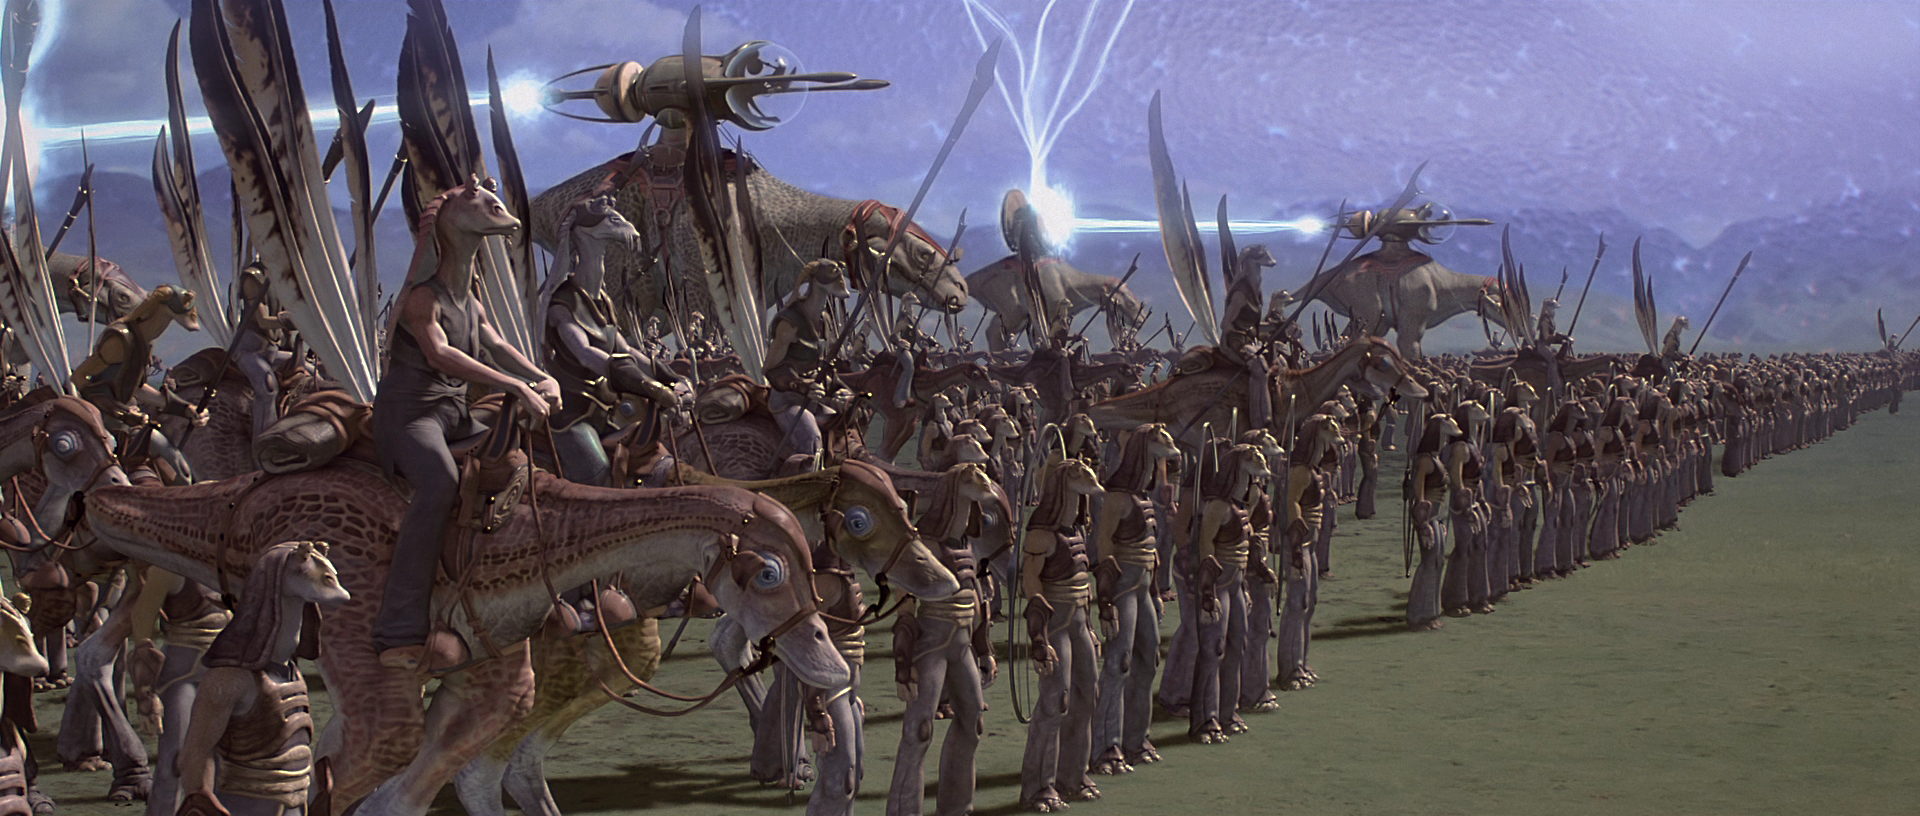 Gungan Grand Army/Legends